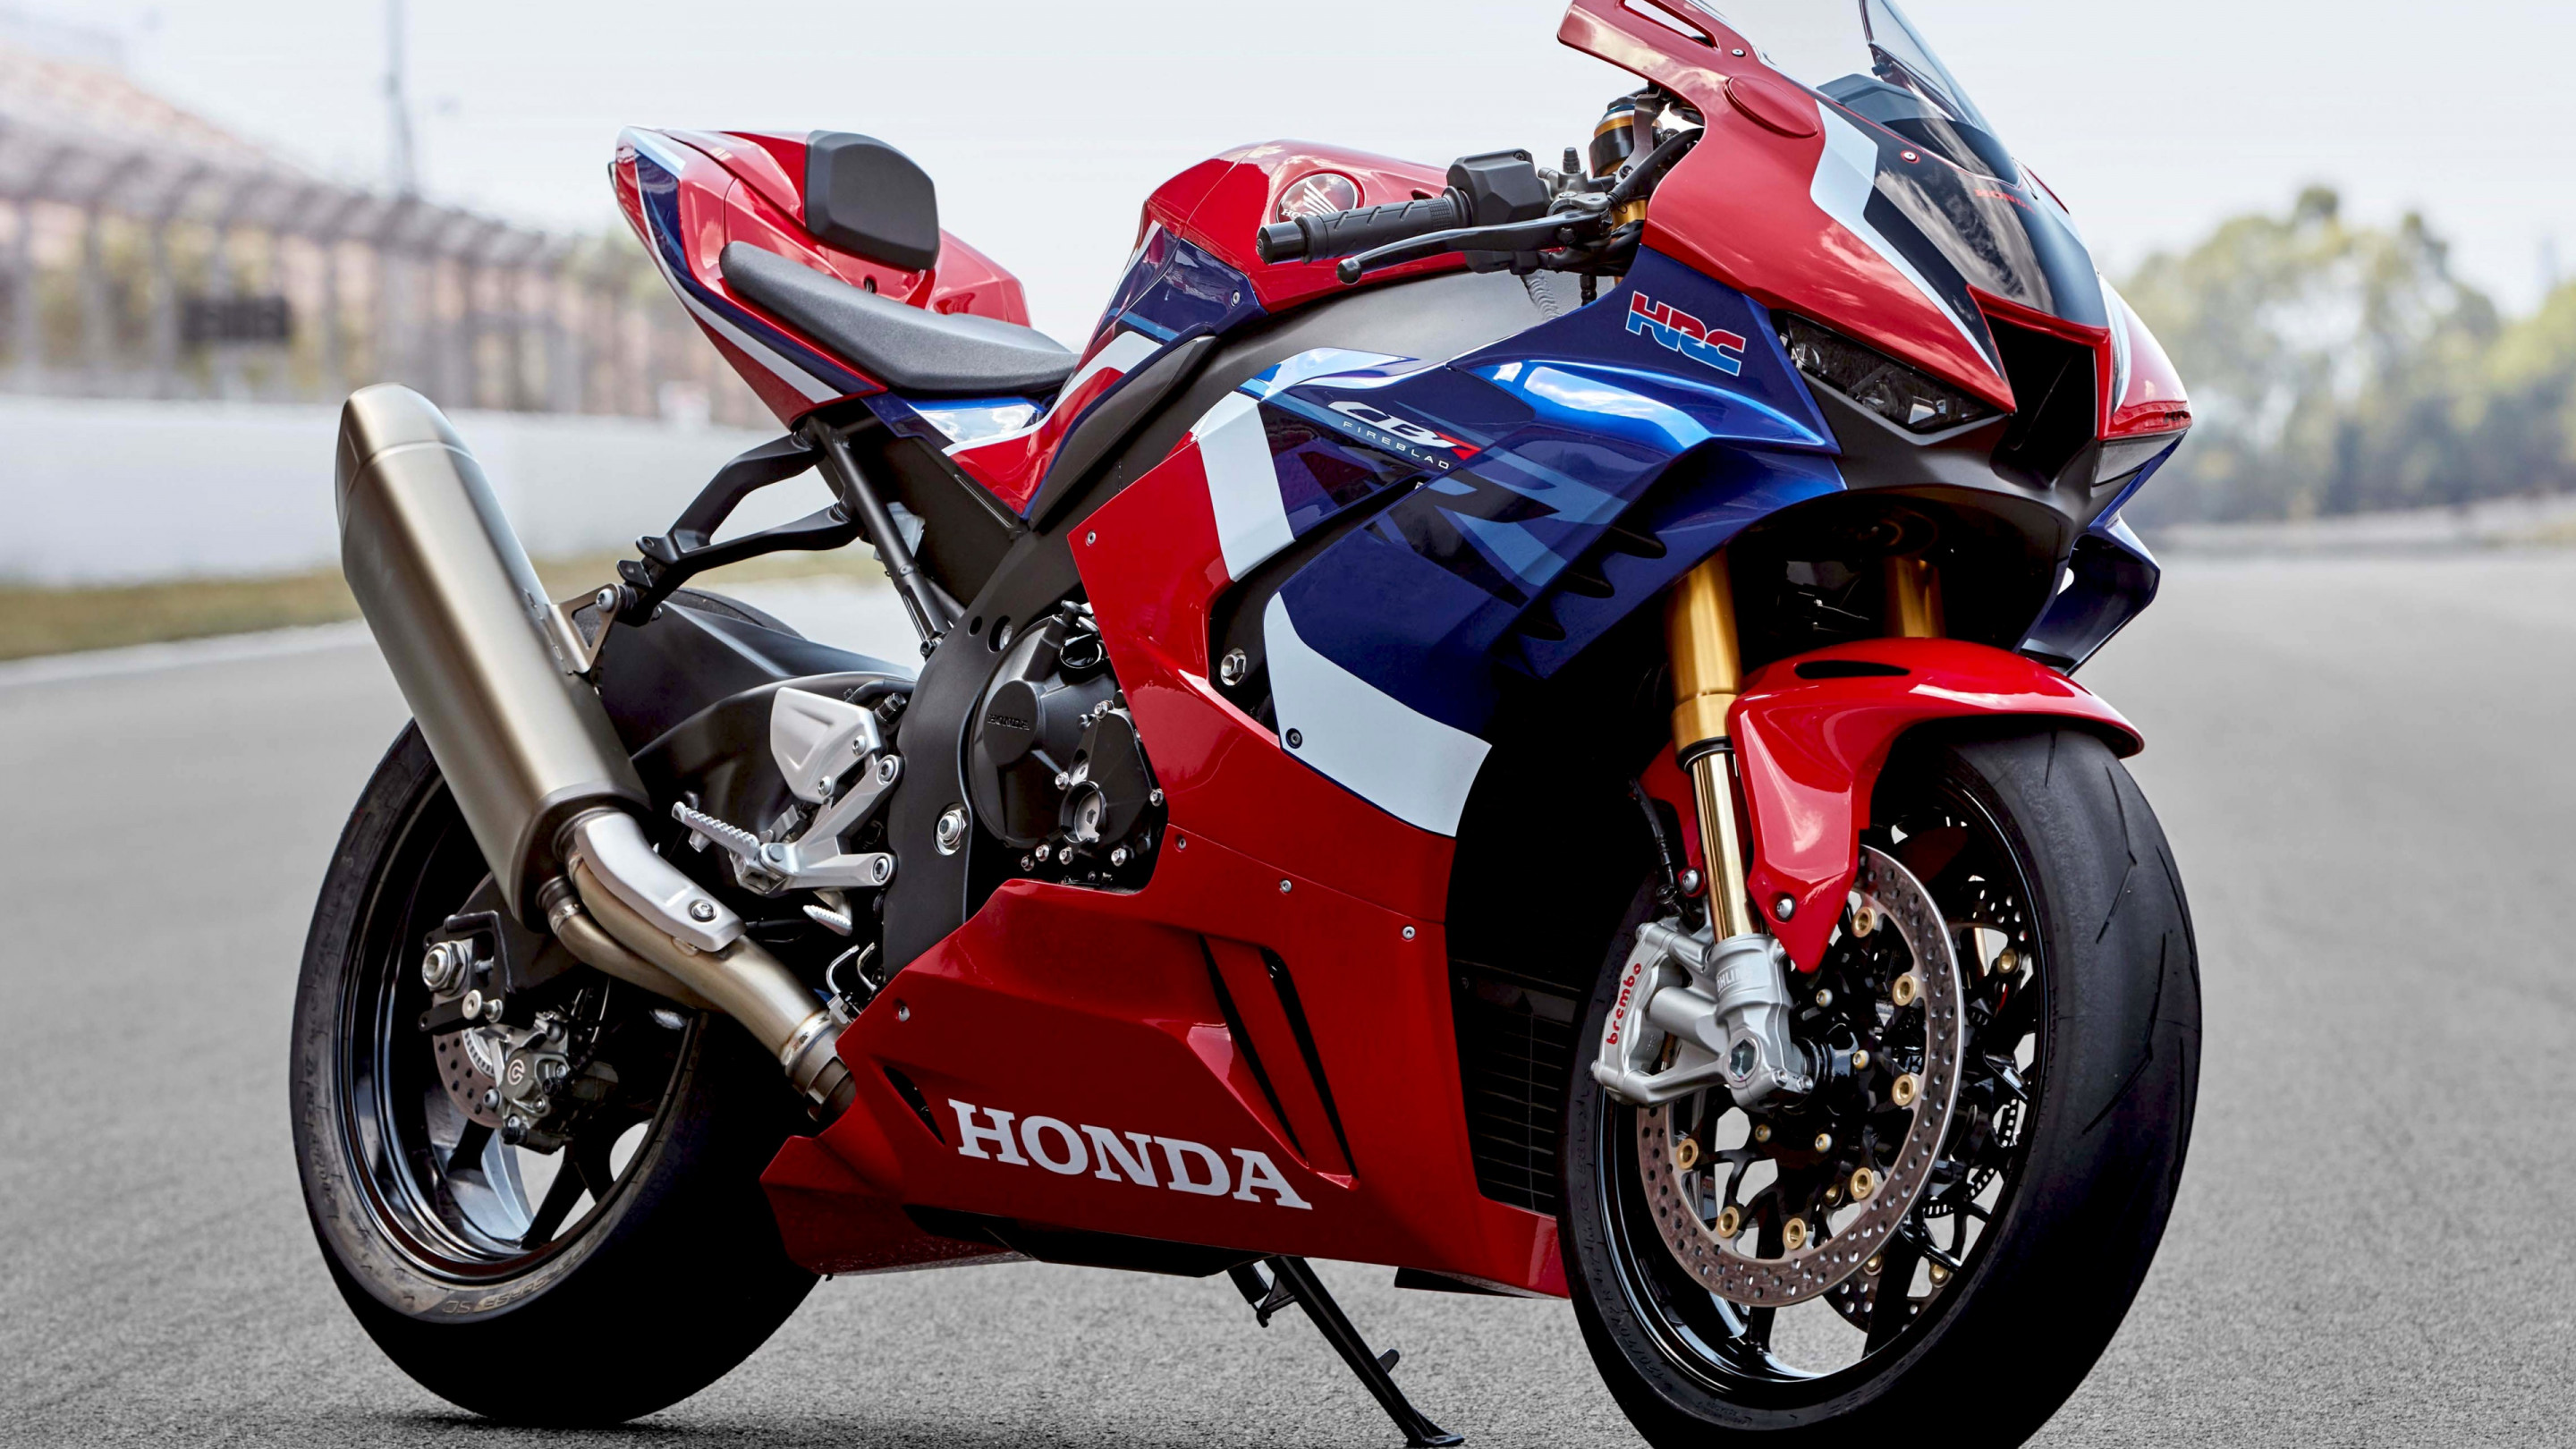 Honda CBR1000RR R SP wallpaper 2880x1620